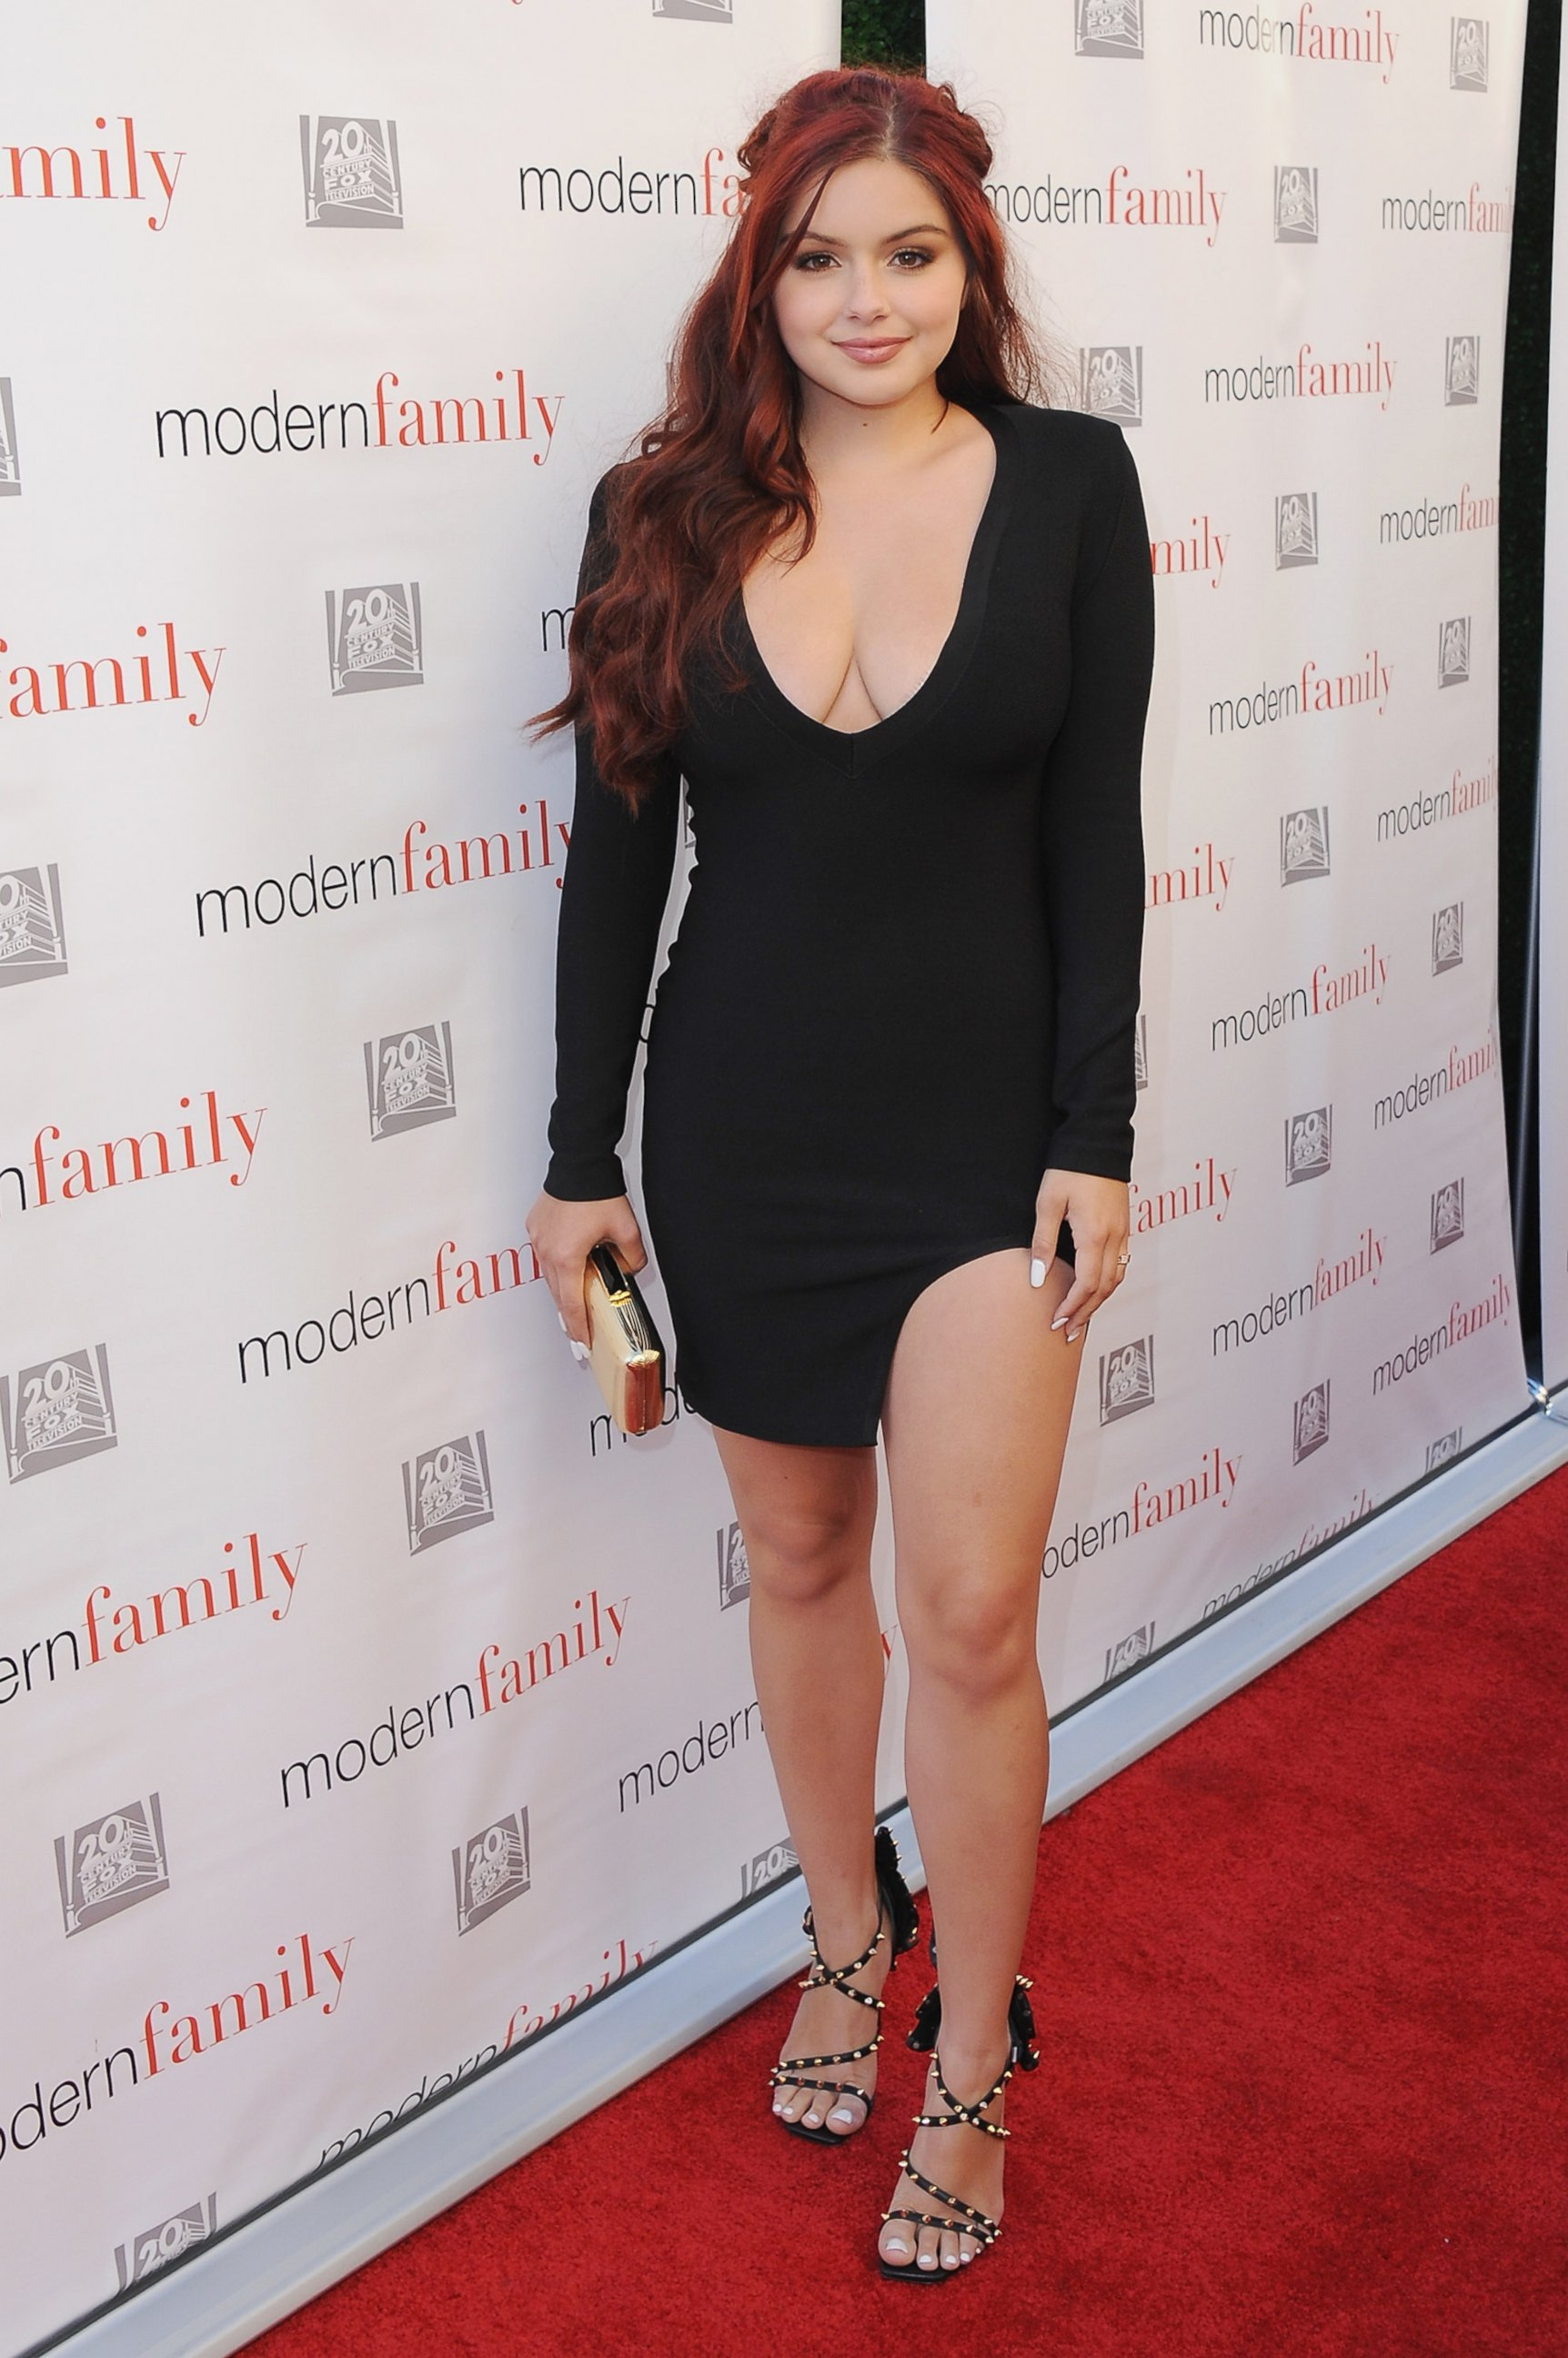 Ariel Winter very sexy photo